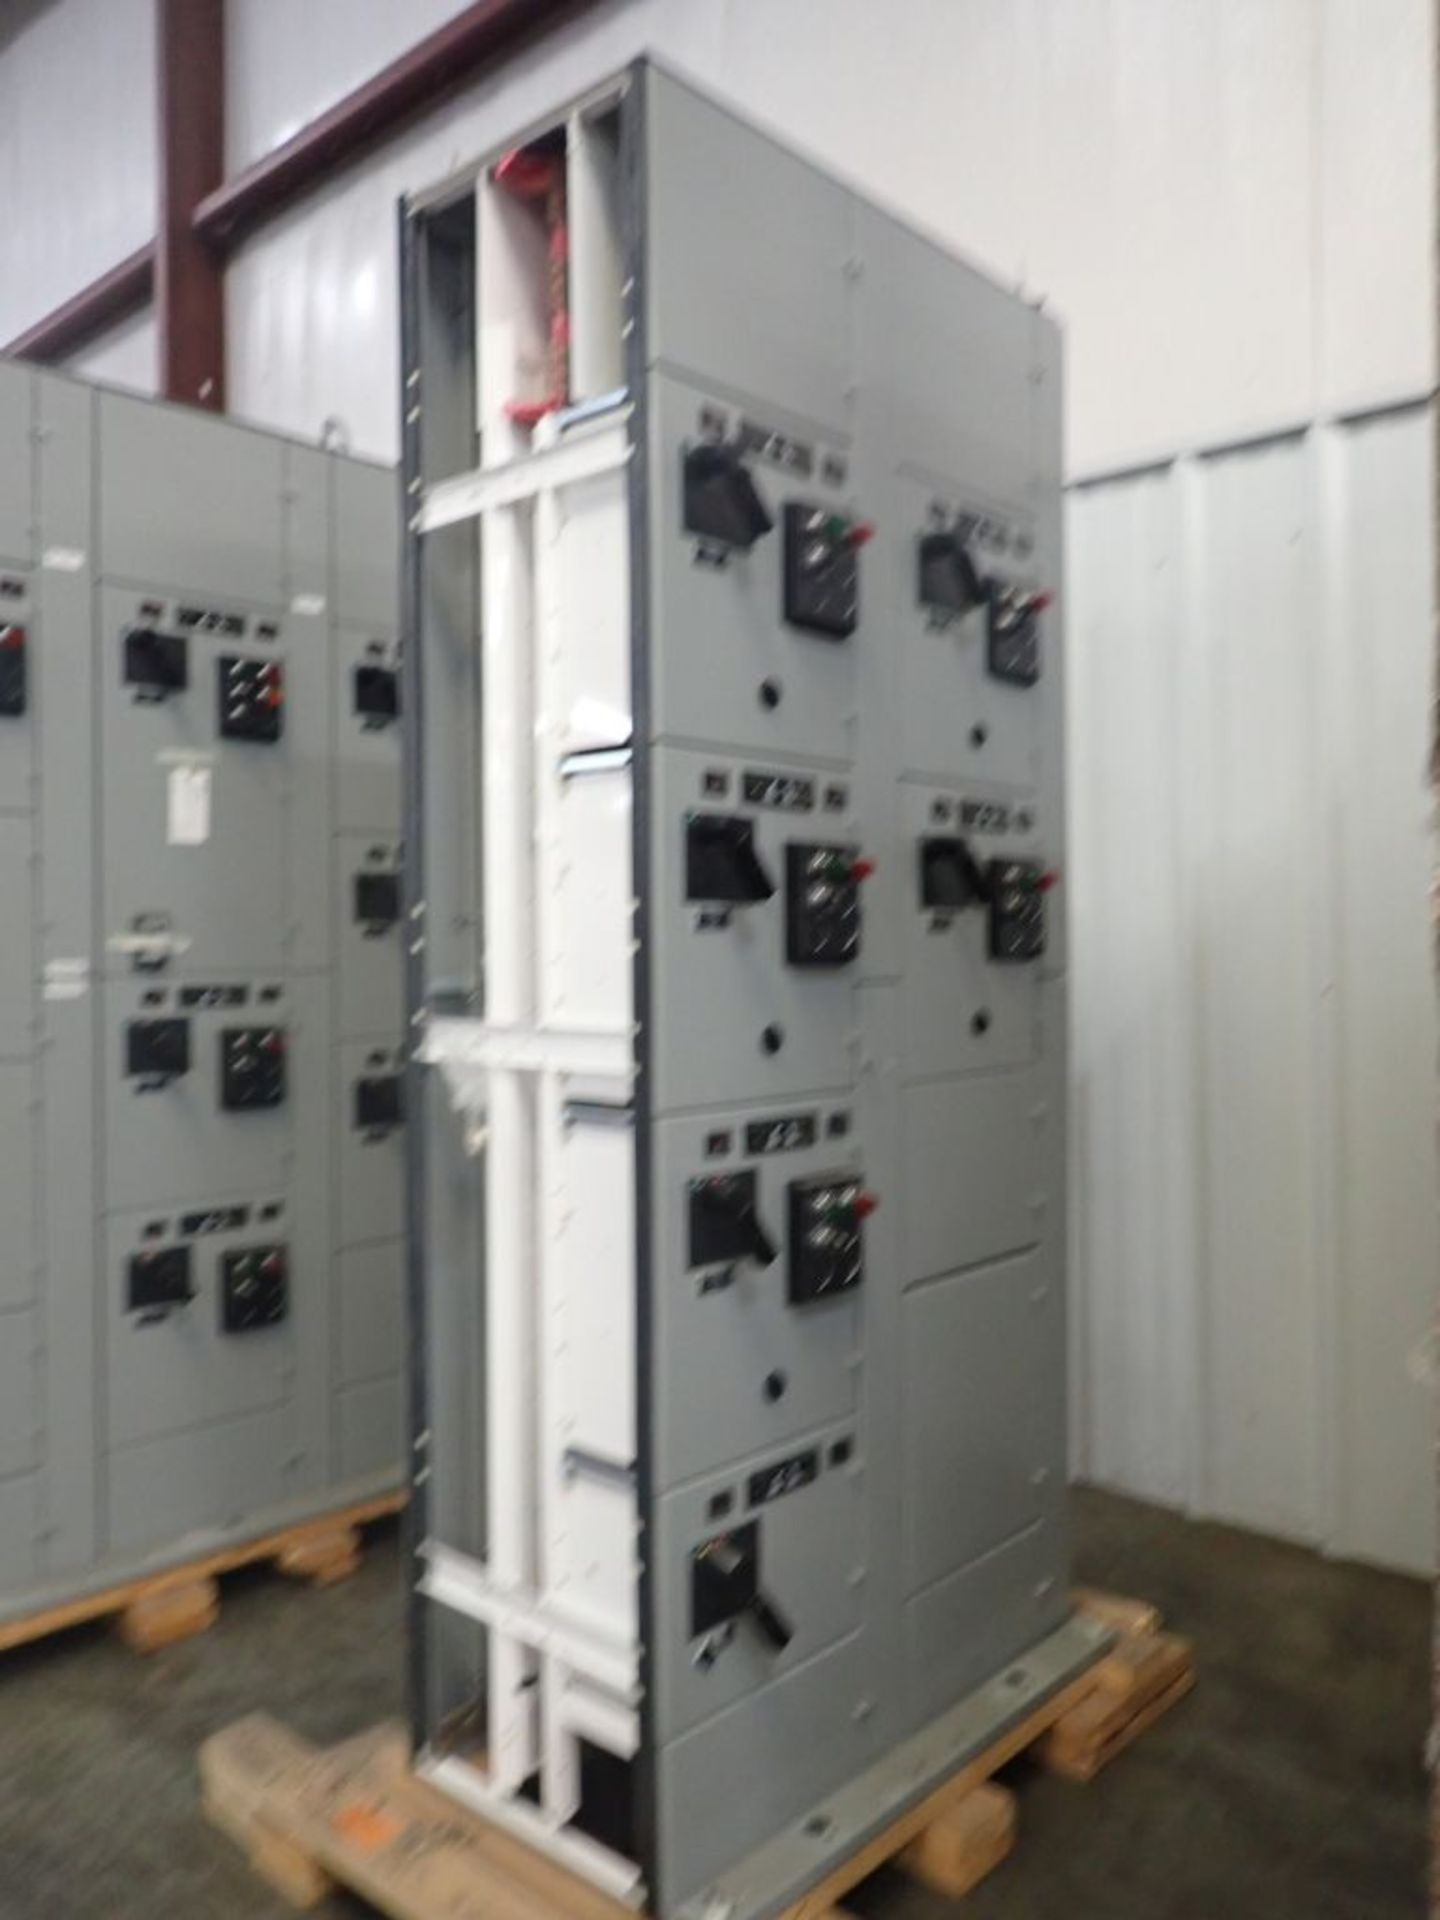 Eaton Freedom 2100 Series Motor Control Center | (2) F206-7A-10HP; (3) F206-15A-10HP; (1) FDRB-100A; - Image 4 of 87